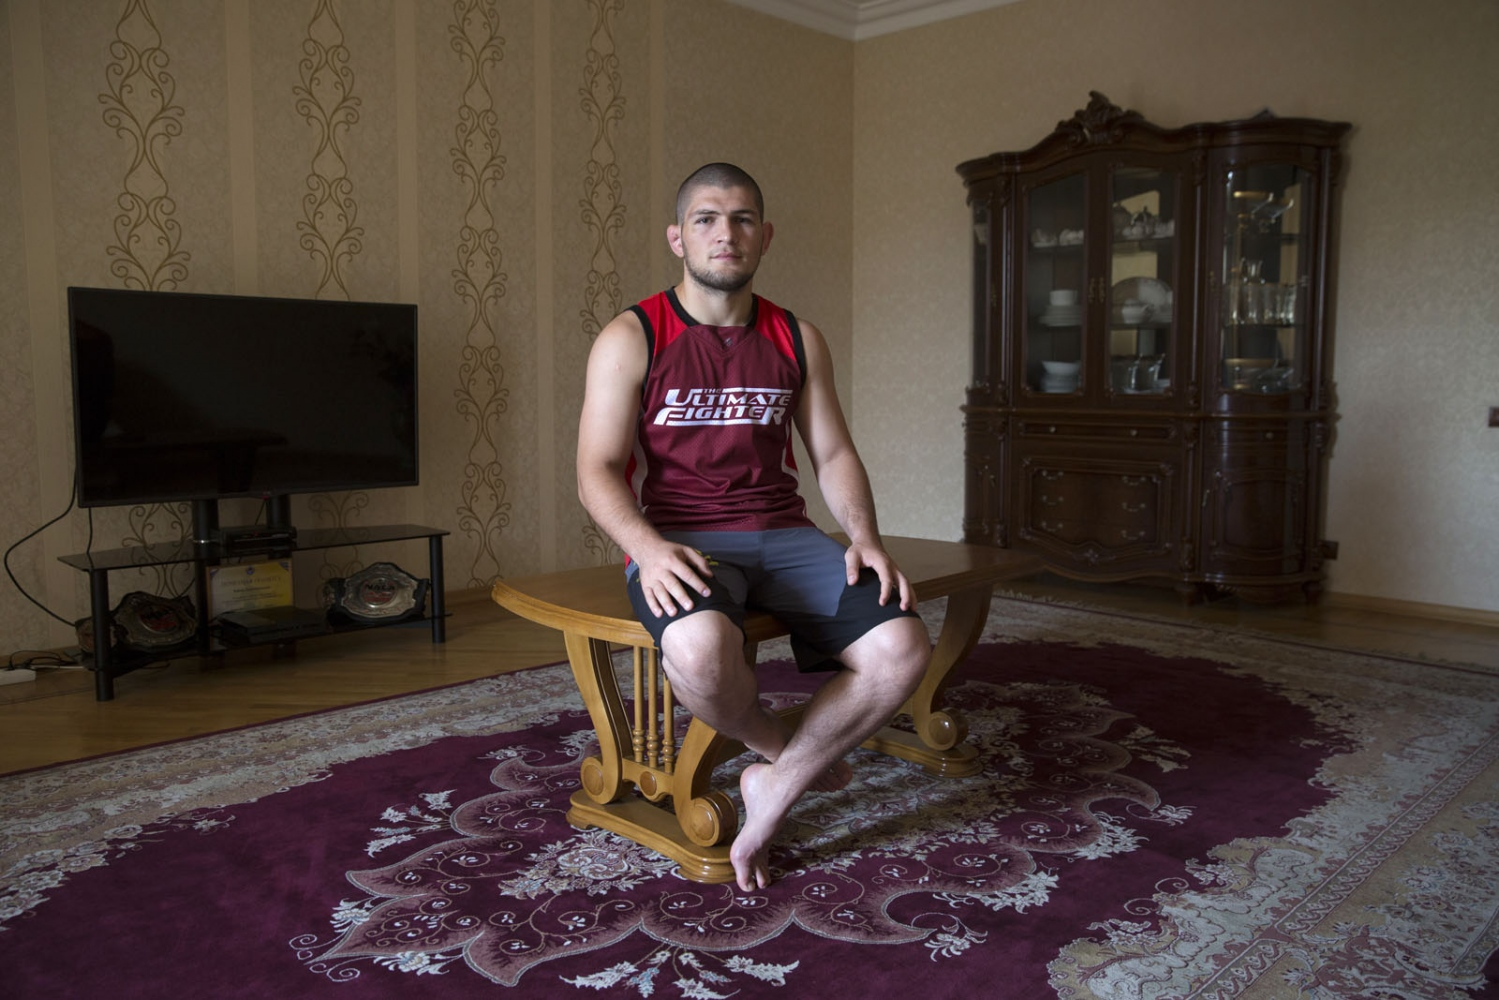 Dagestani local Khabib Nurmagomedov in his home during Ramadan in Makhachkala. Born September 20, 1988 Khabib is a Russian undefeated mixed martial artist. He is a multiple time Combat Sambo World Champion and a Judo black belt who is currently fighting in the lightweight division for the Ultimate Fighting Championship (UFC). He currently holds one of the longest undefeated streaks in MMA with 22 straight wins. He is currently the #3 contender in the UFC Lightweight division and the #3 Lightweight in the world.